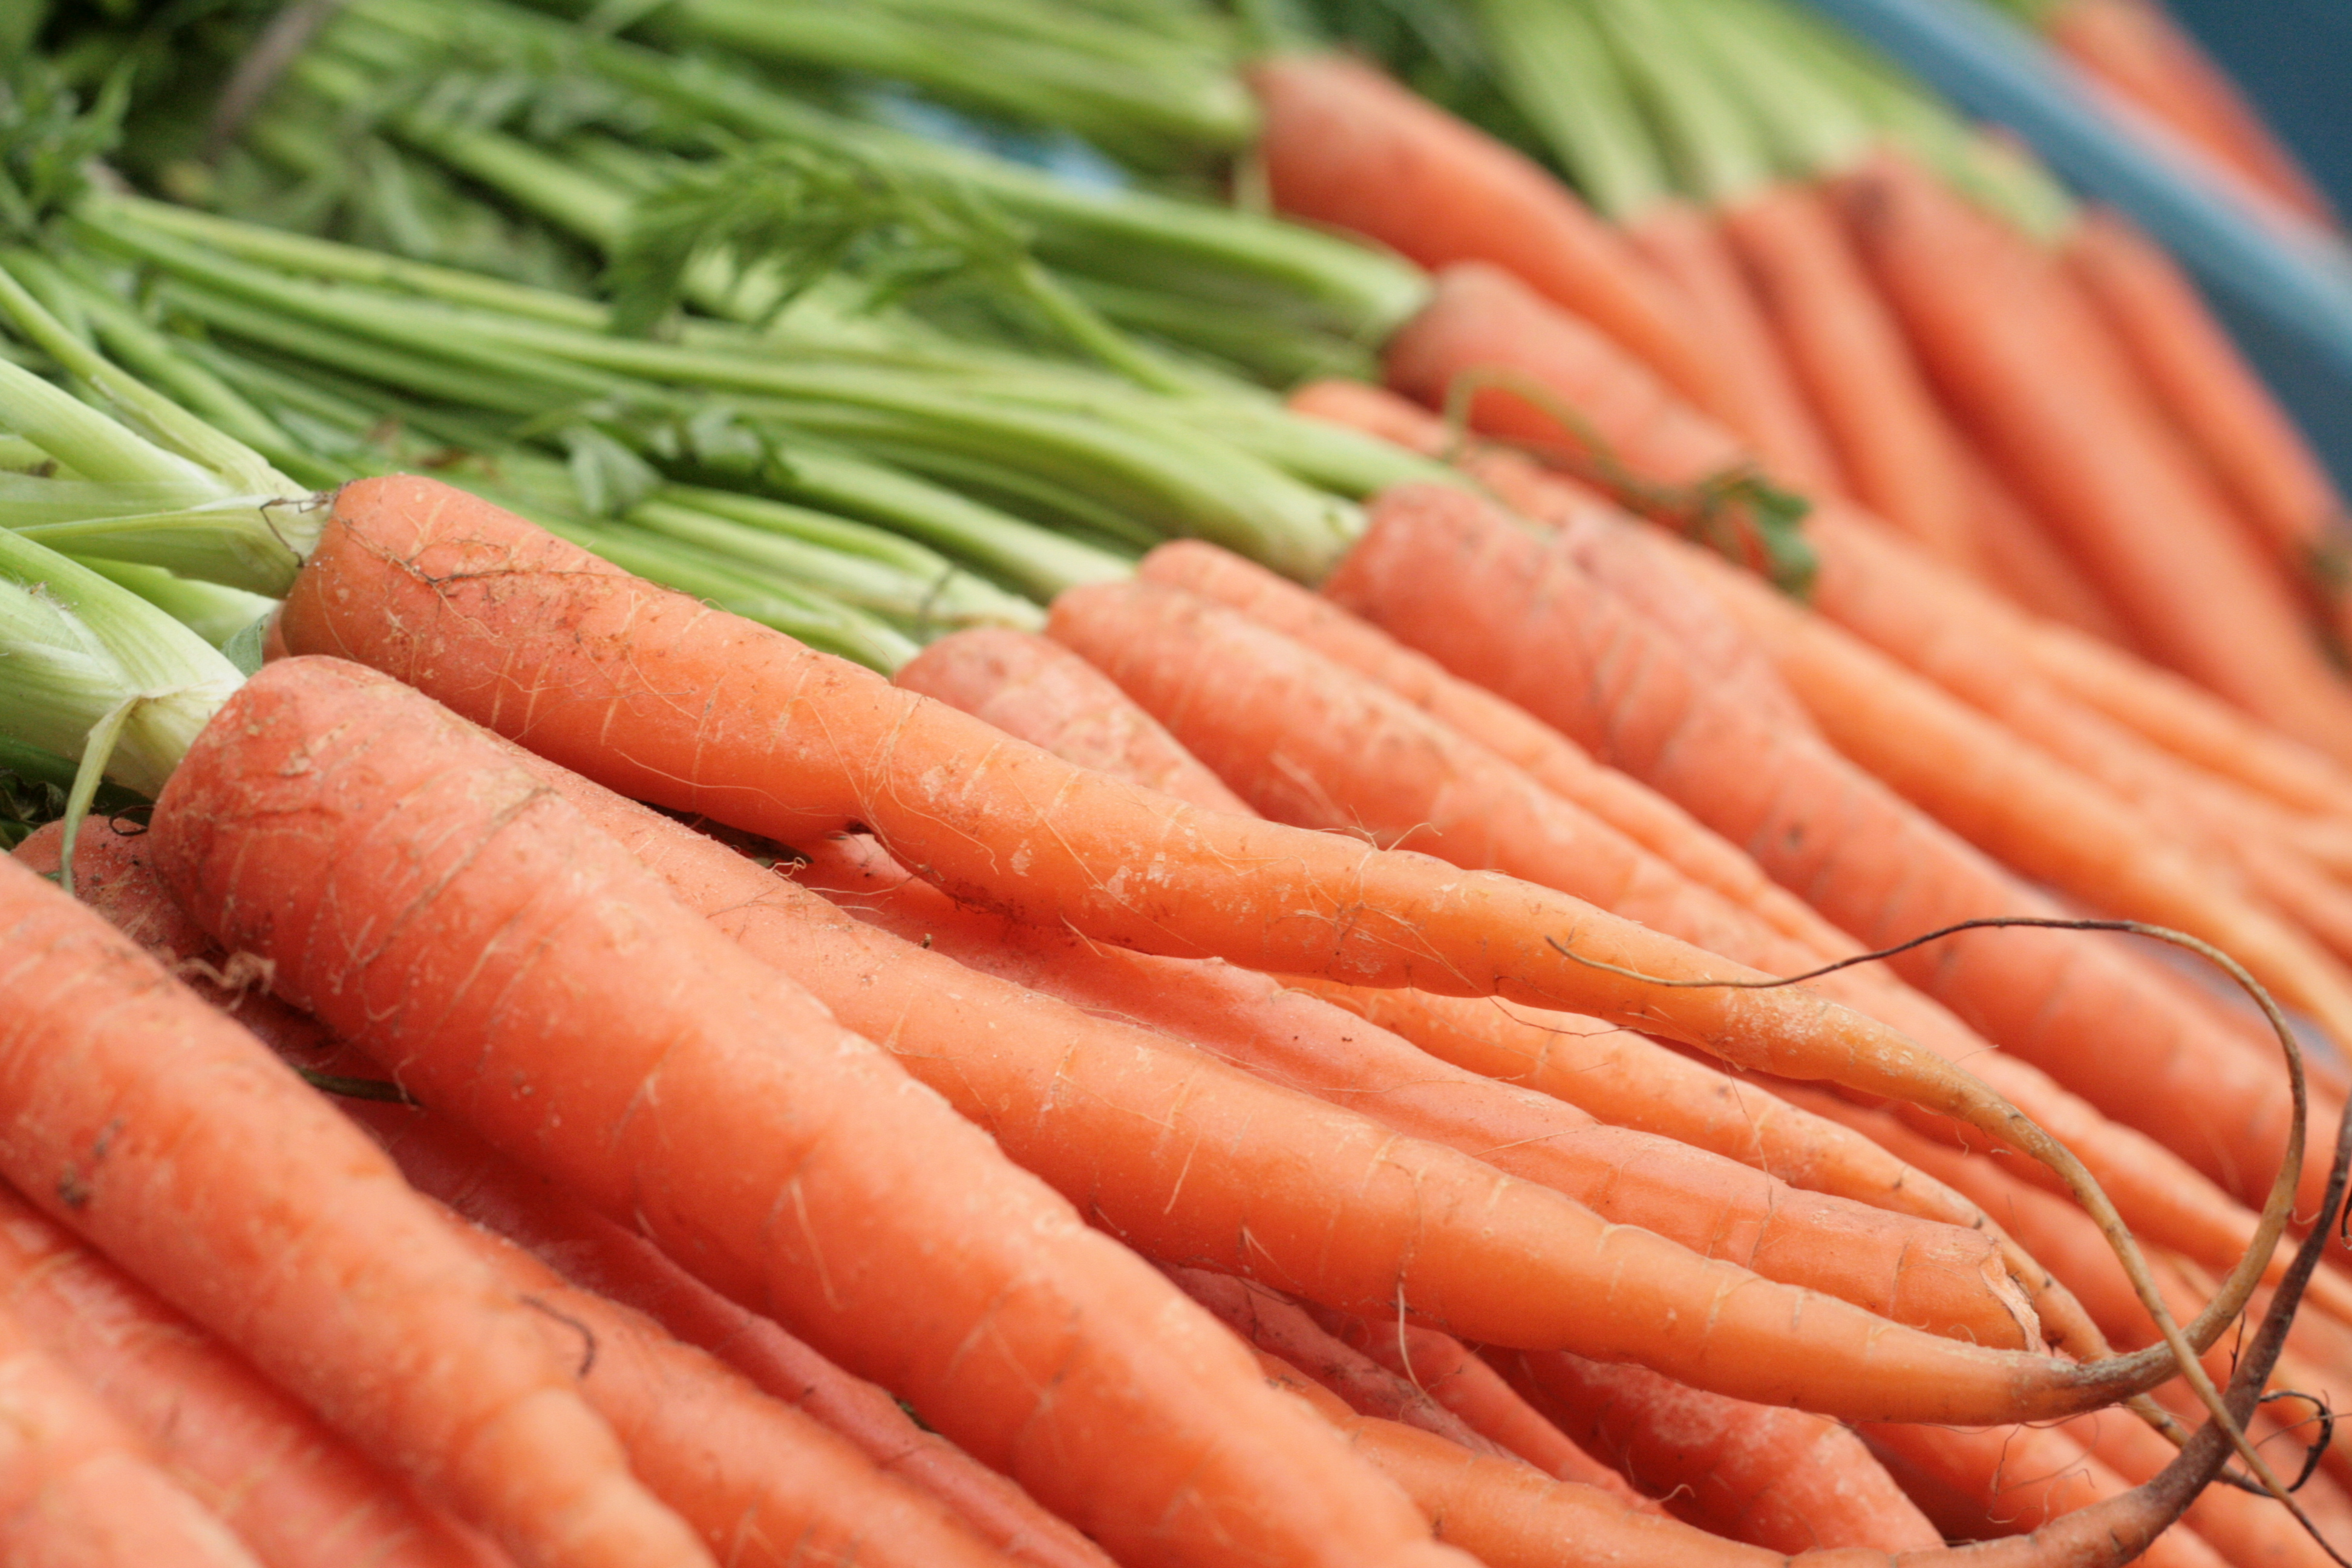 10 Veggies that are Perfect for Fall Planting| Vegetable Garden, Vegetable Gardening, Vegetable Gardening for Beginners, Garden Ideas, Fall Garden Ideas, Fall Gardening Ideas, Fall Garden Vegetables, Vegetable Garden, Vegetable Garden Ideas, Vegetable Gardening for Beginners